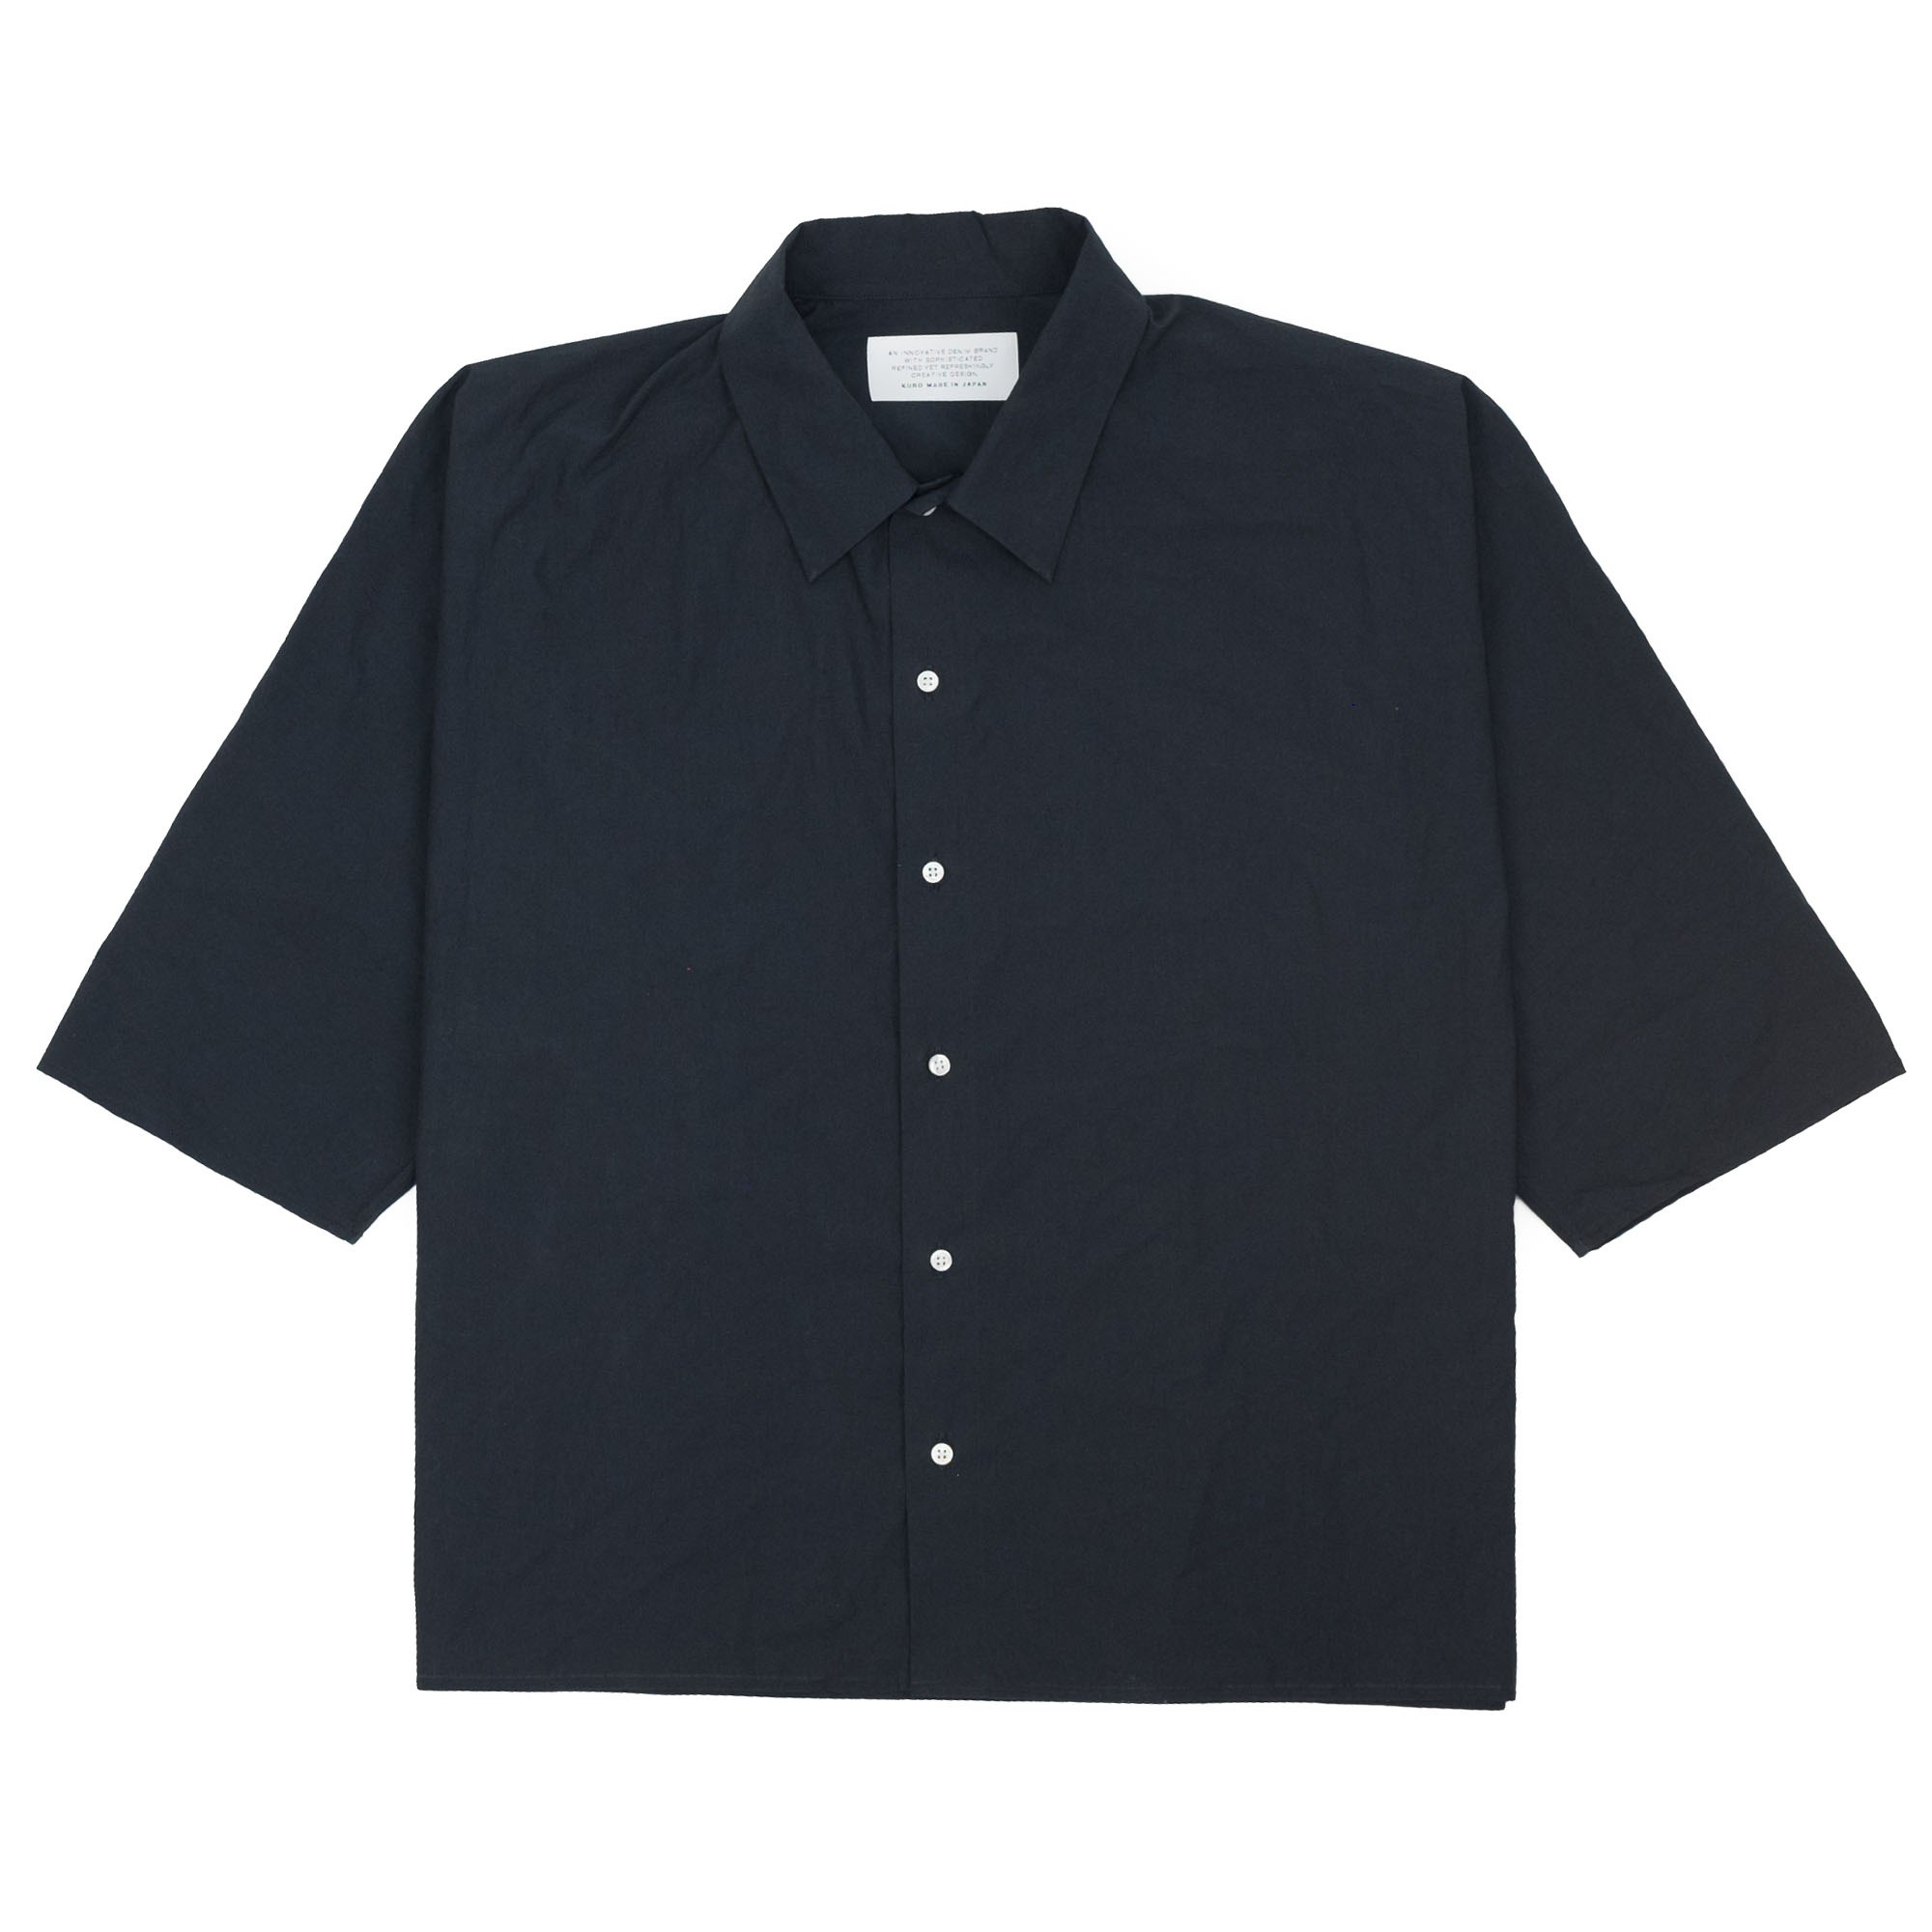 Kuro Dolman Sleeve S/S Shirt - Black